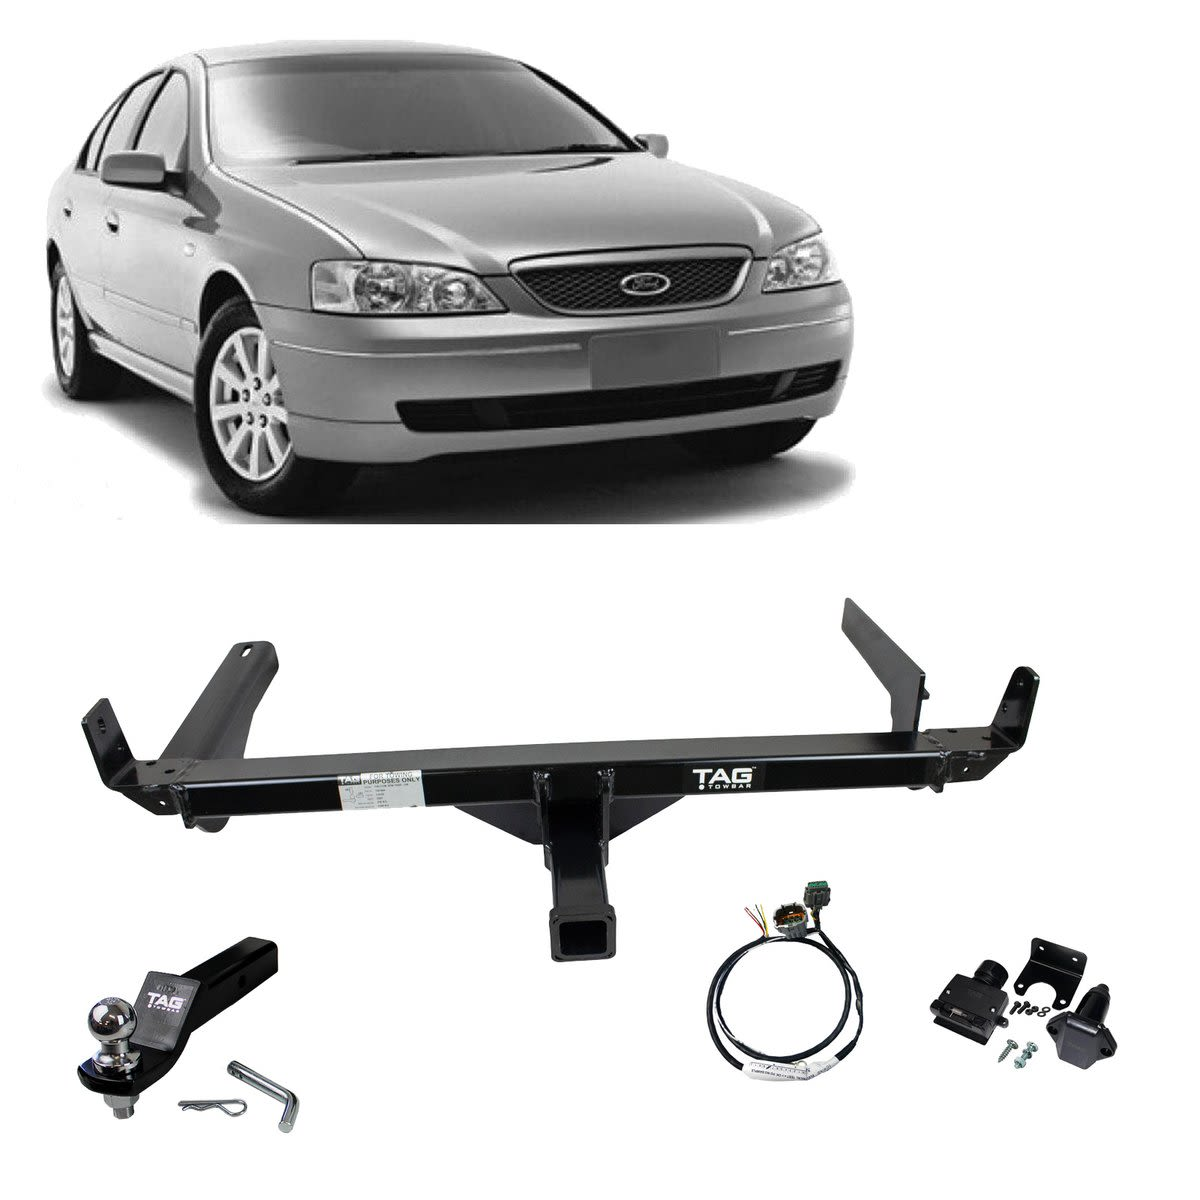 TAG Heavy Duty Towbar to suit Ford Fairmont (01/2002 - 01/2008), Falcon (01/2002 - 10/2016) - No Wiring Harness